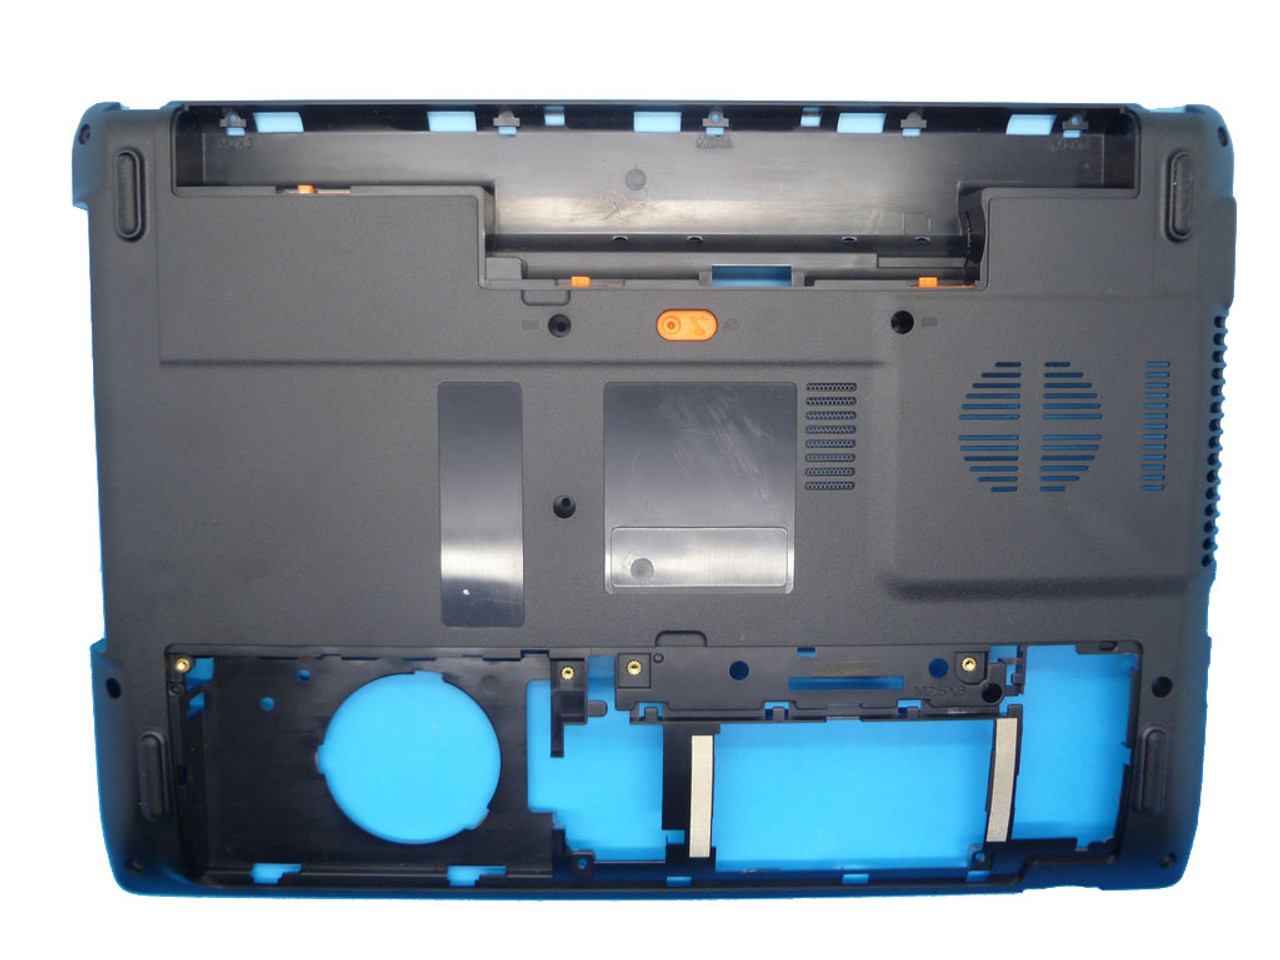 Laptop Bottom Case for ACER AS4743 4750 4743G 4750G 60.4IQ04.004 WIS604IQ0100111022003A01-07033